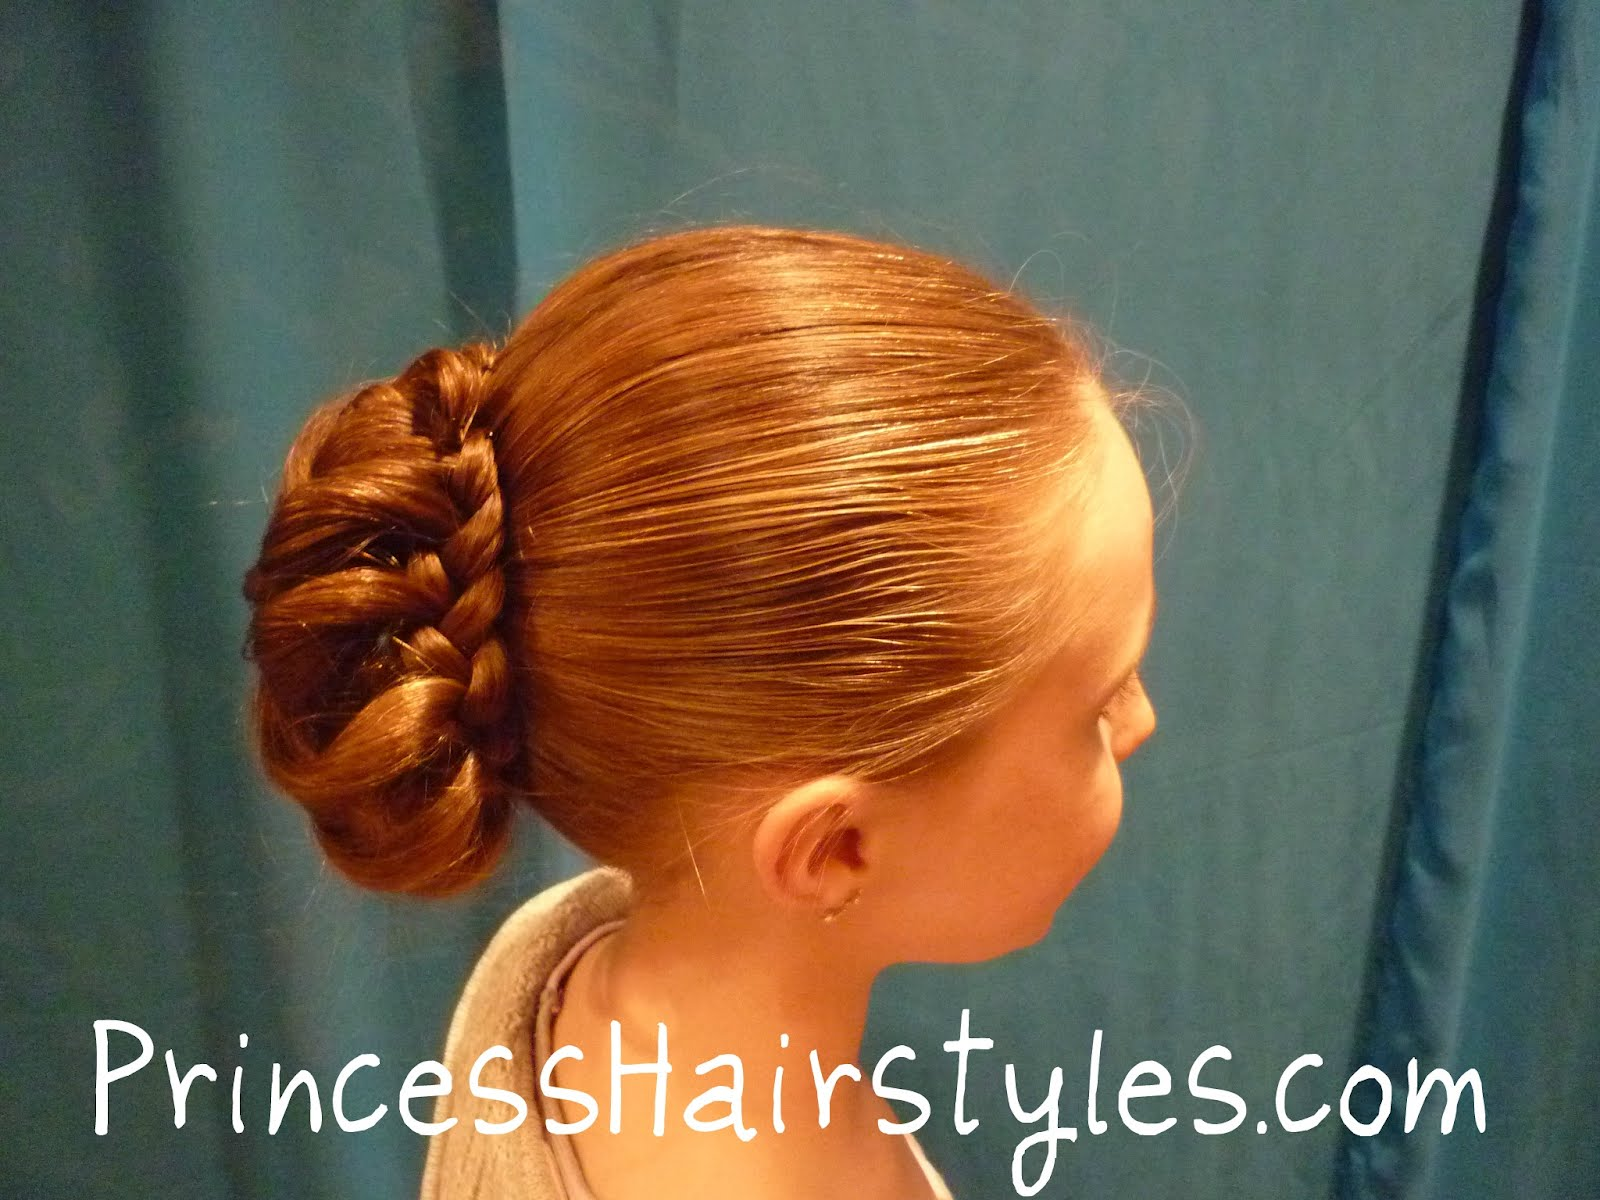 Braid Wrapped Bun Hairstyles For Girls Princess Hairstyles